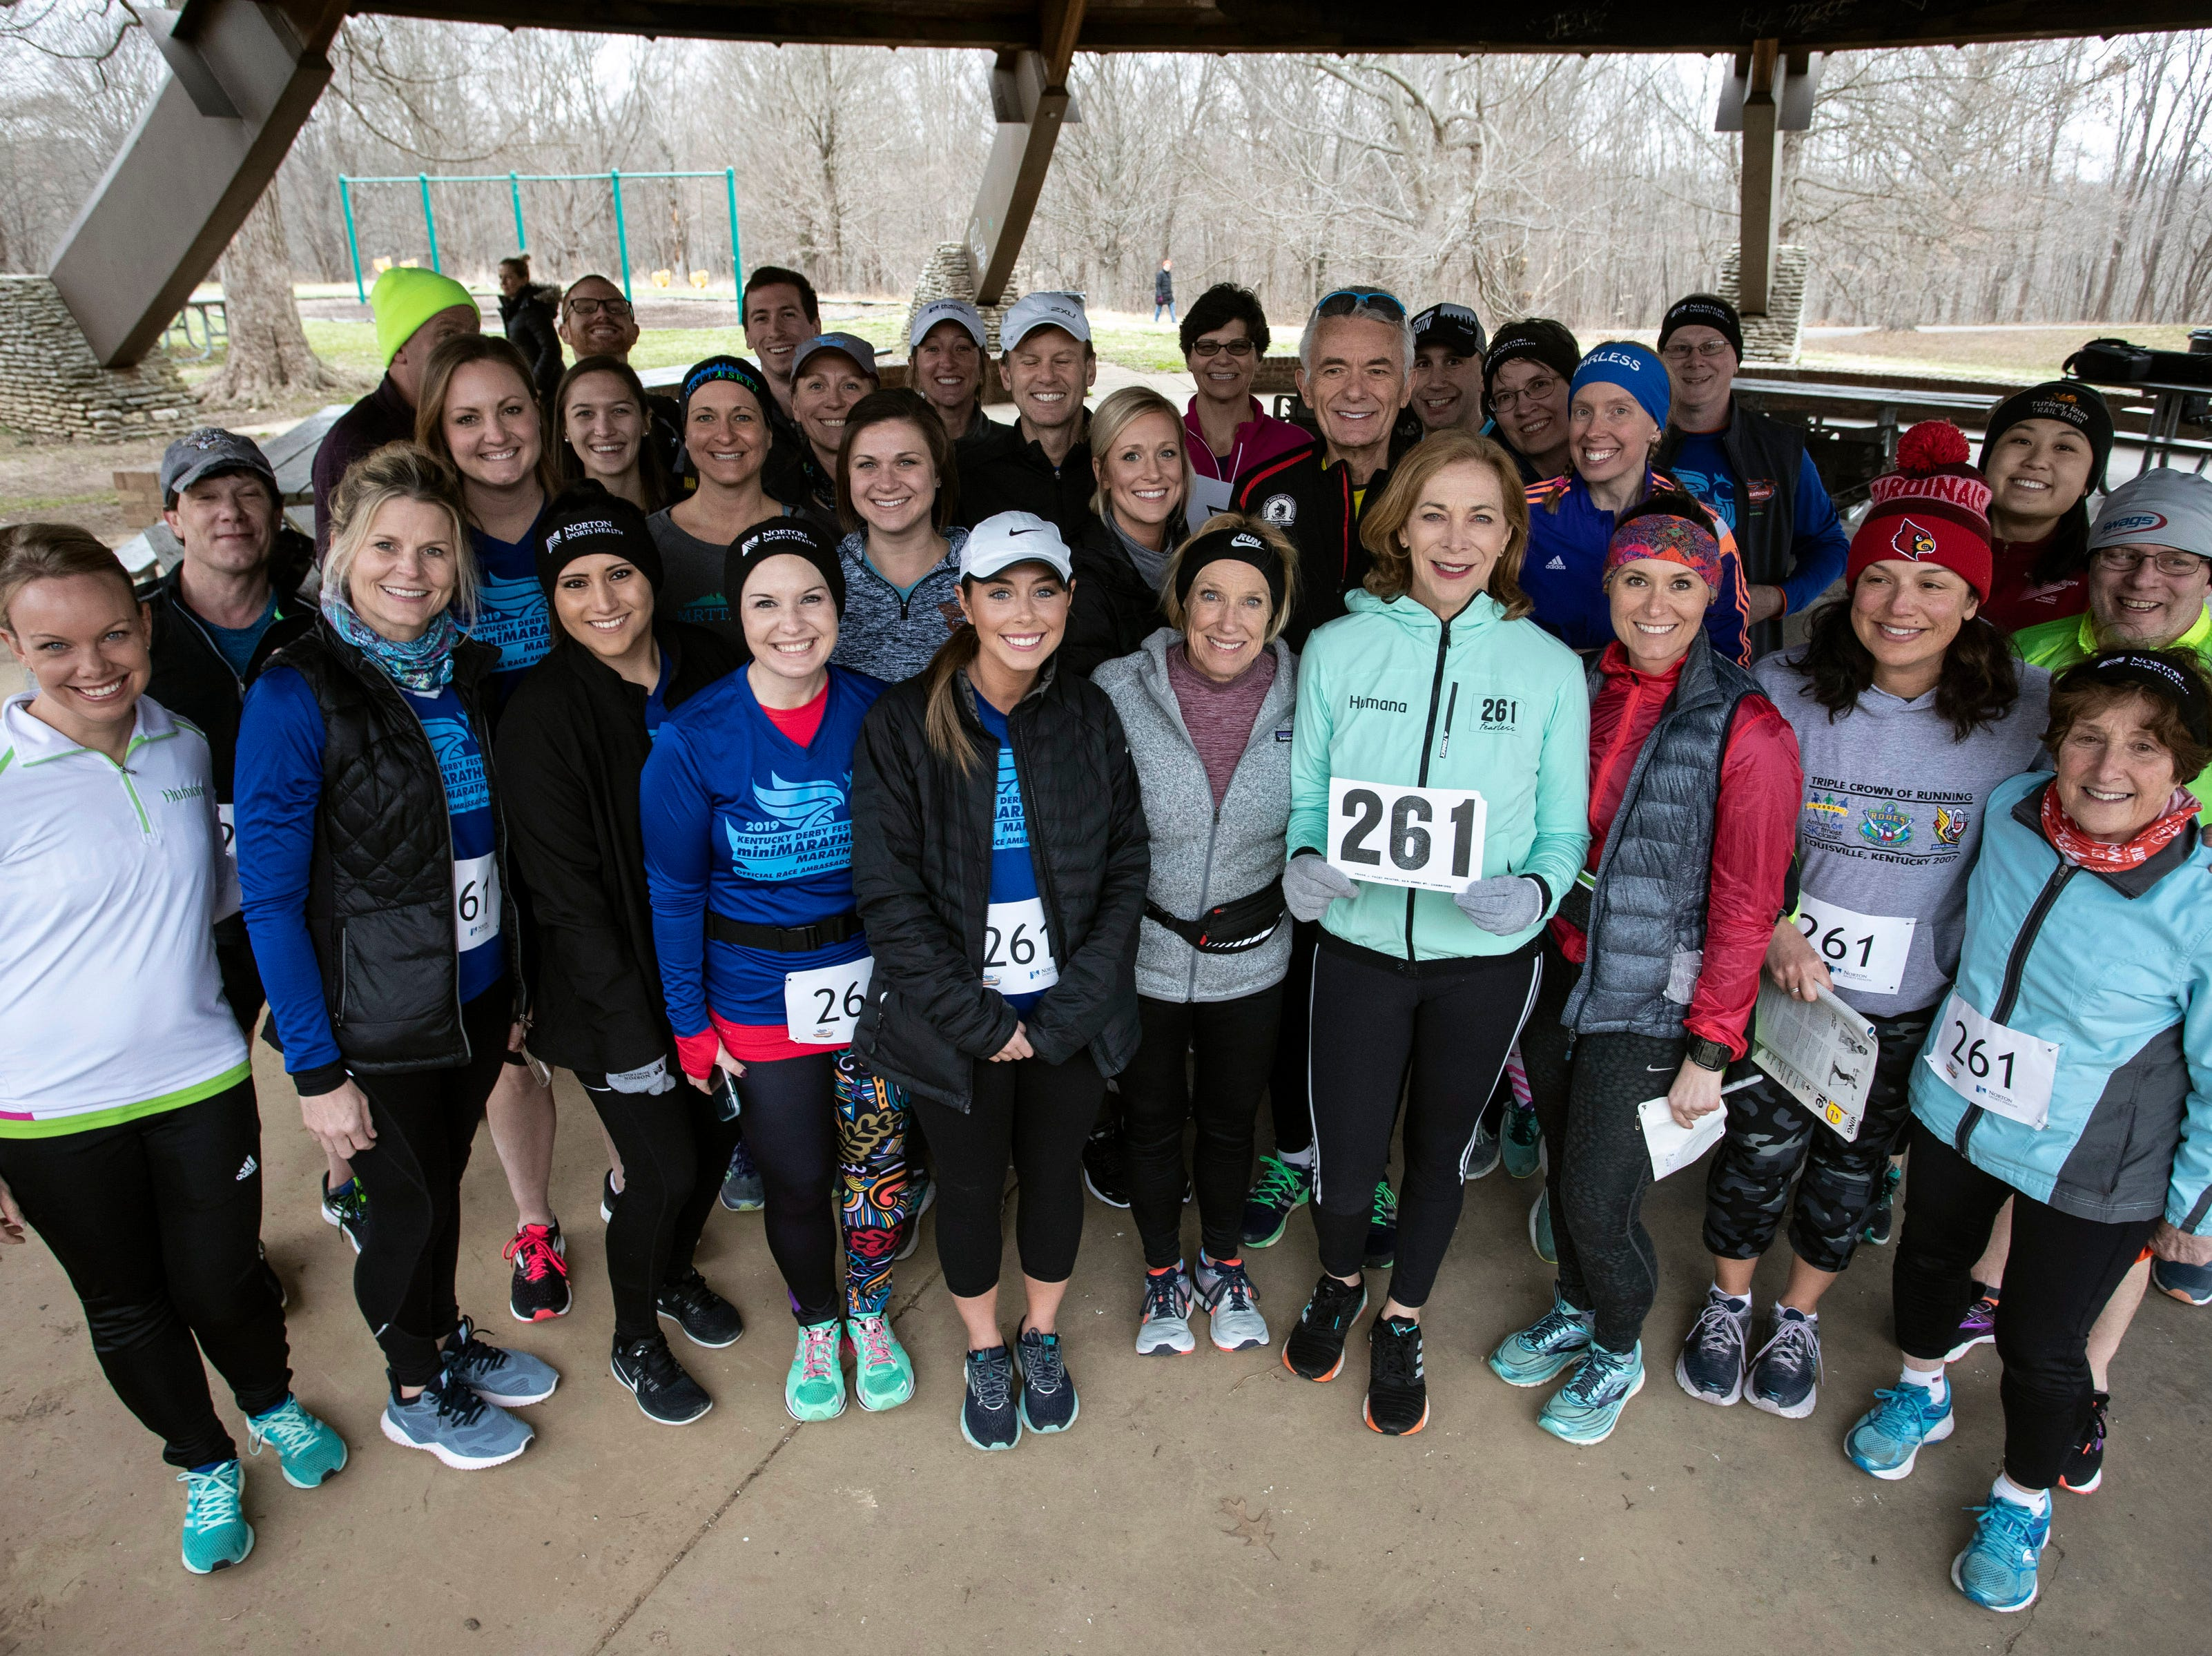 """Holding her famous """"261"""" bib, Kathrine Switzer, who in 1967 became the first woman to run the Boston Marathon as a numbered entrant, posed with a few dozen of her fans near Hogan's Fountain in Cherokee Park on Thursday afternoon. 3/21/19"""